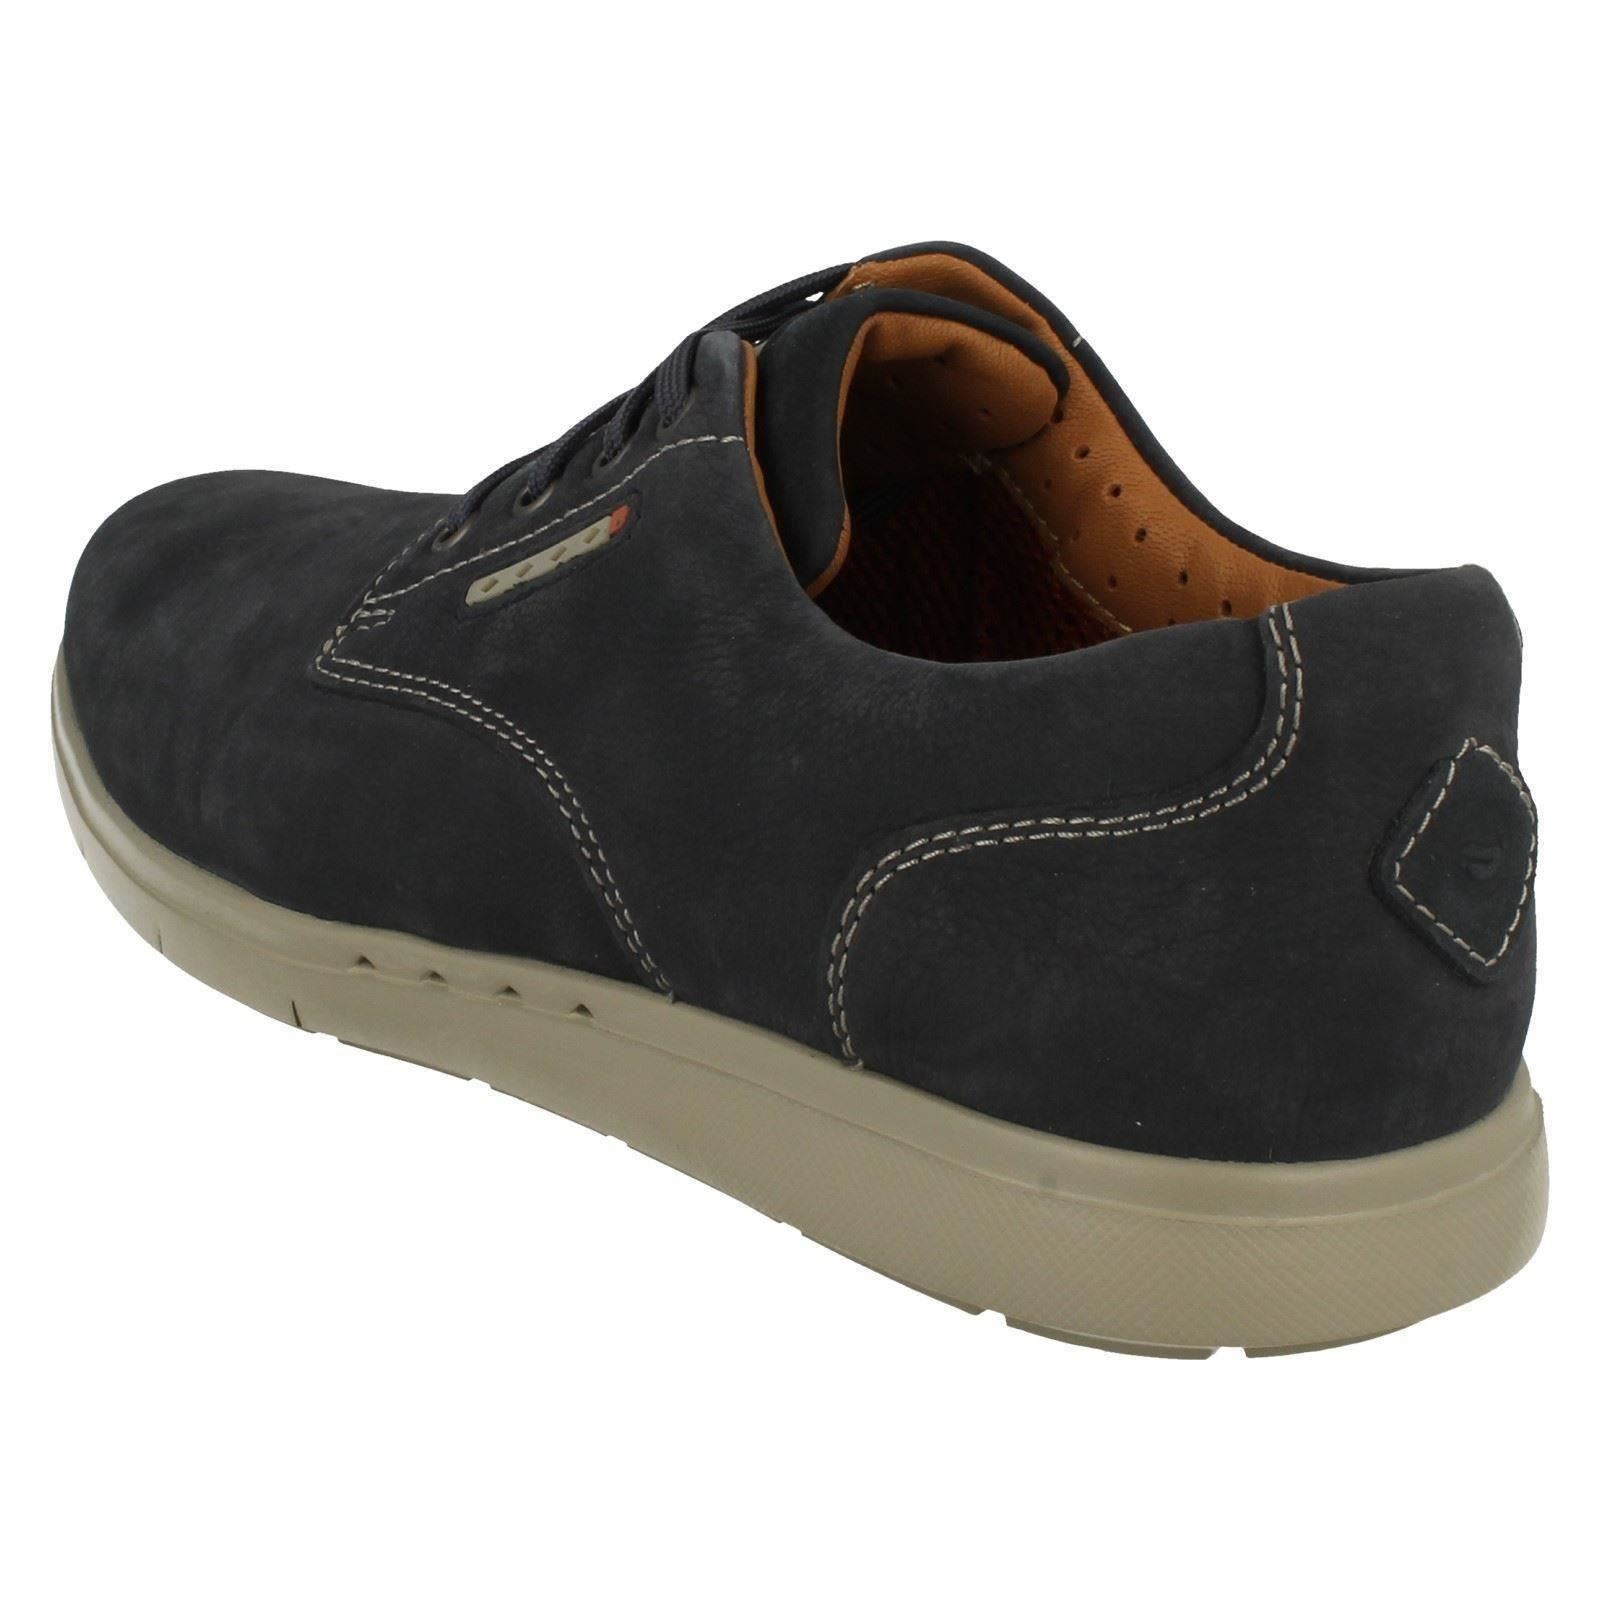 Mens Clarks Up Unstructured Casual Lace Up Clarks Shoes Unlomac Edge 9e1977